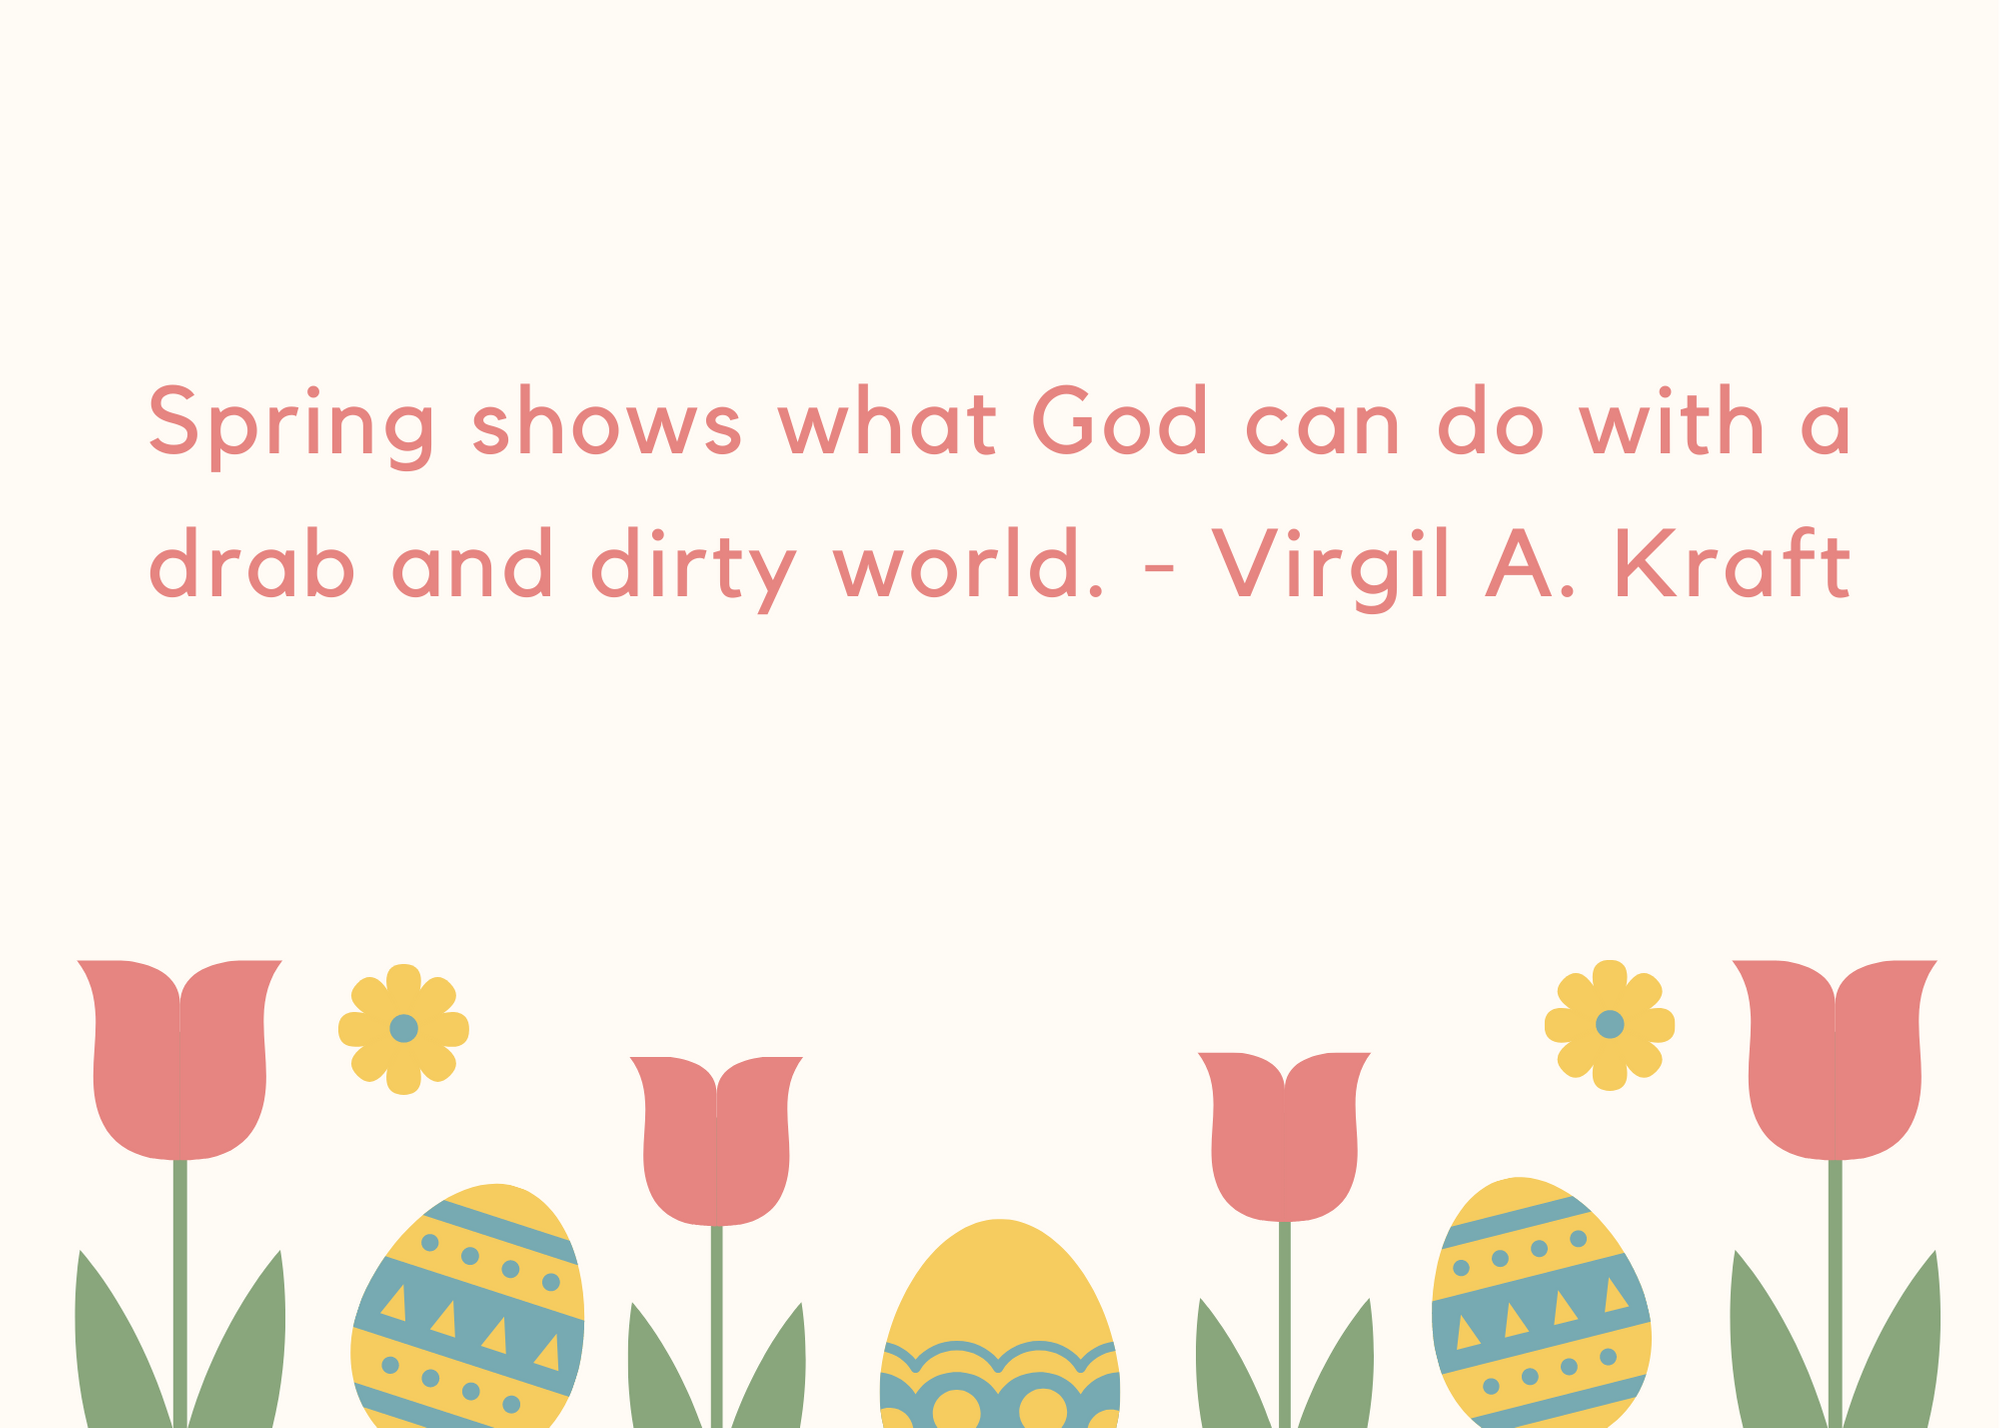 Spring shows what God can do with a drab and dirty world. - Virgil A. Kraft